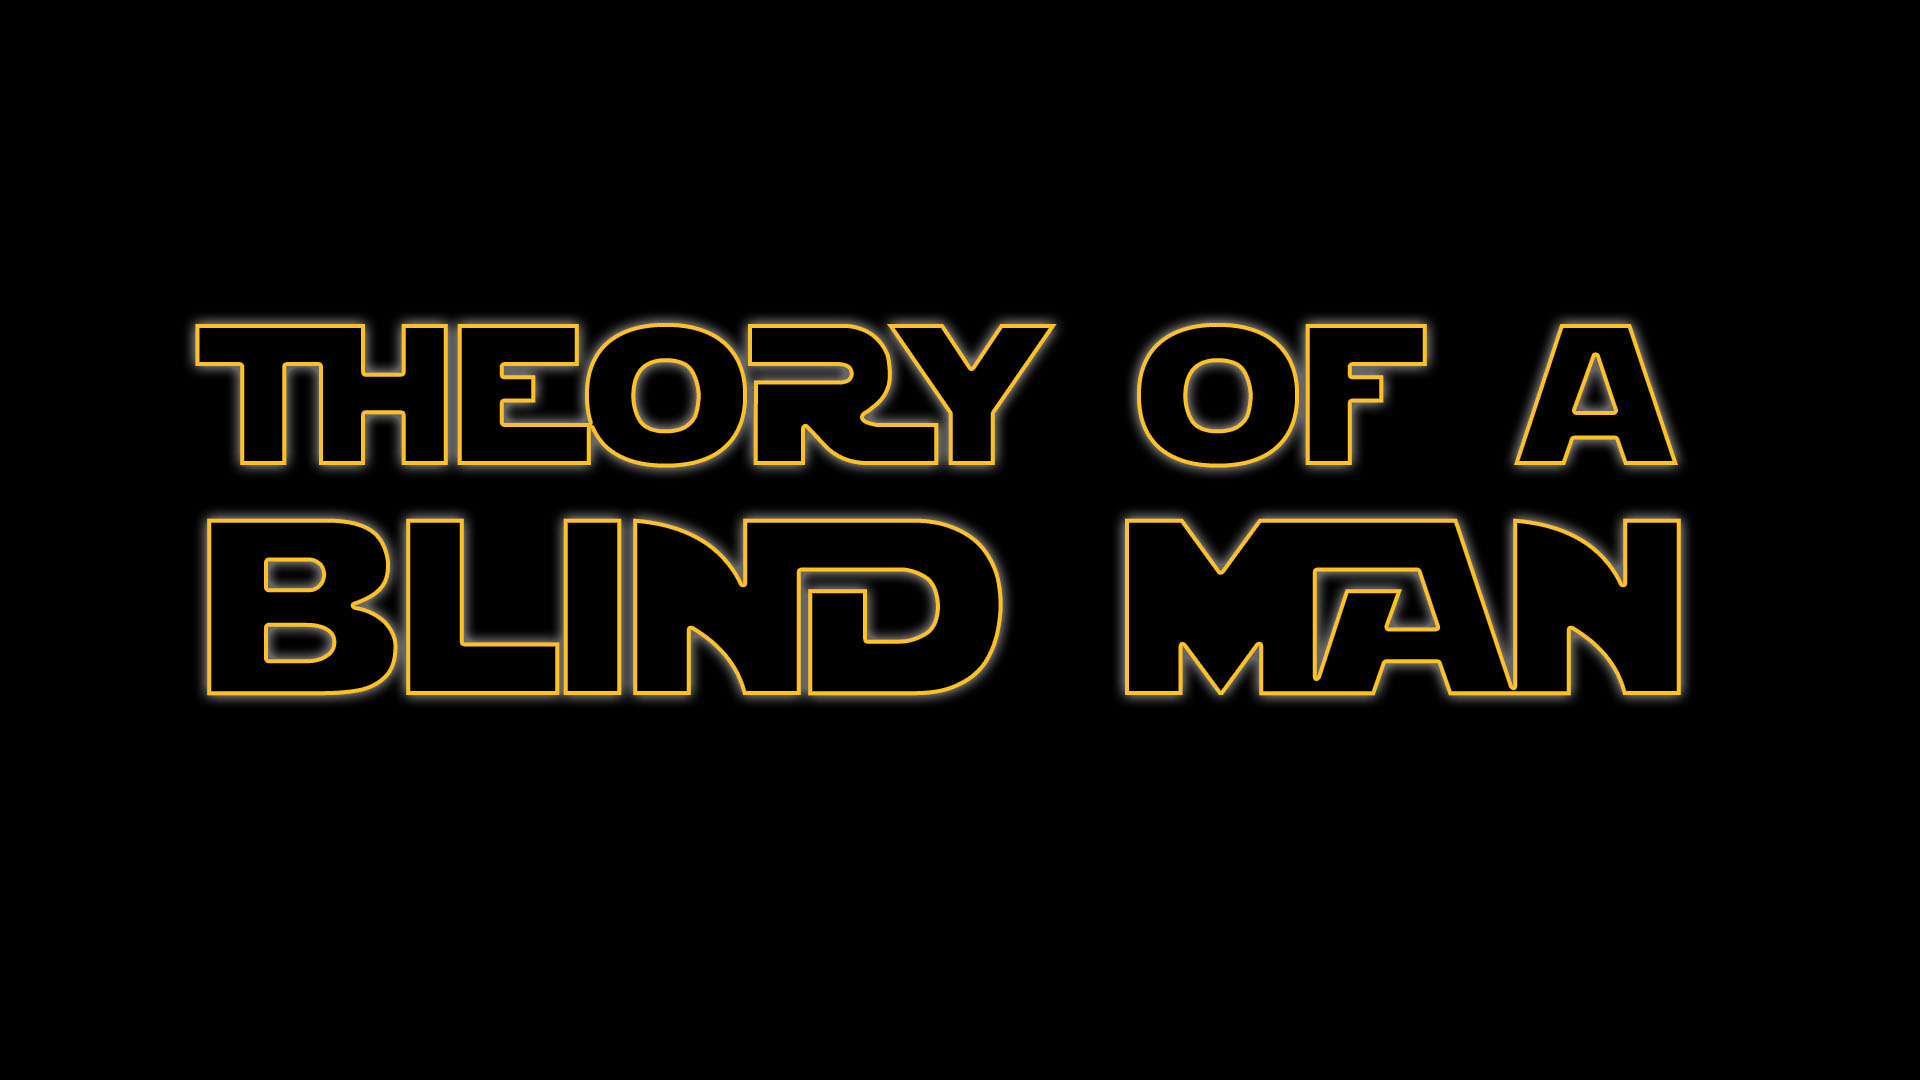 Curvy golden outlined font that reads Theory Of A Blind Man on two lines.